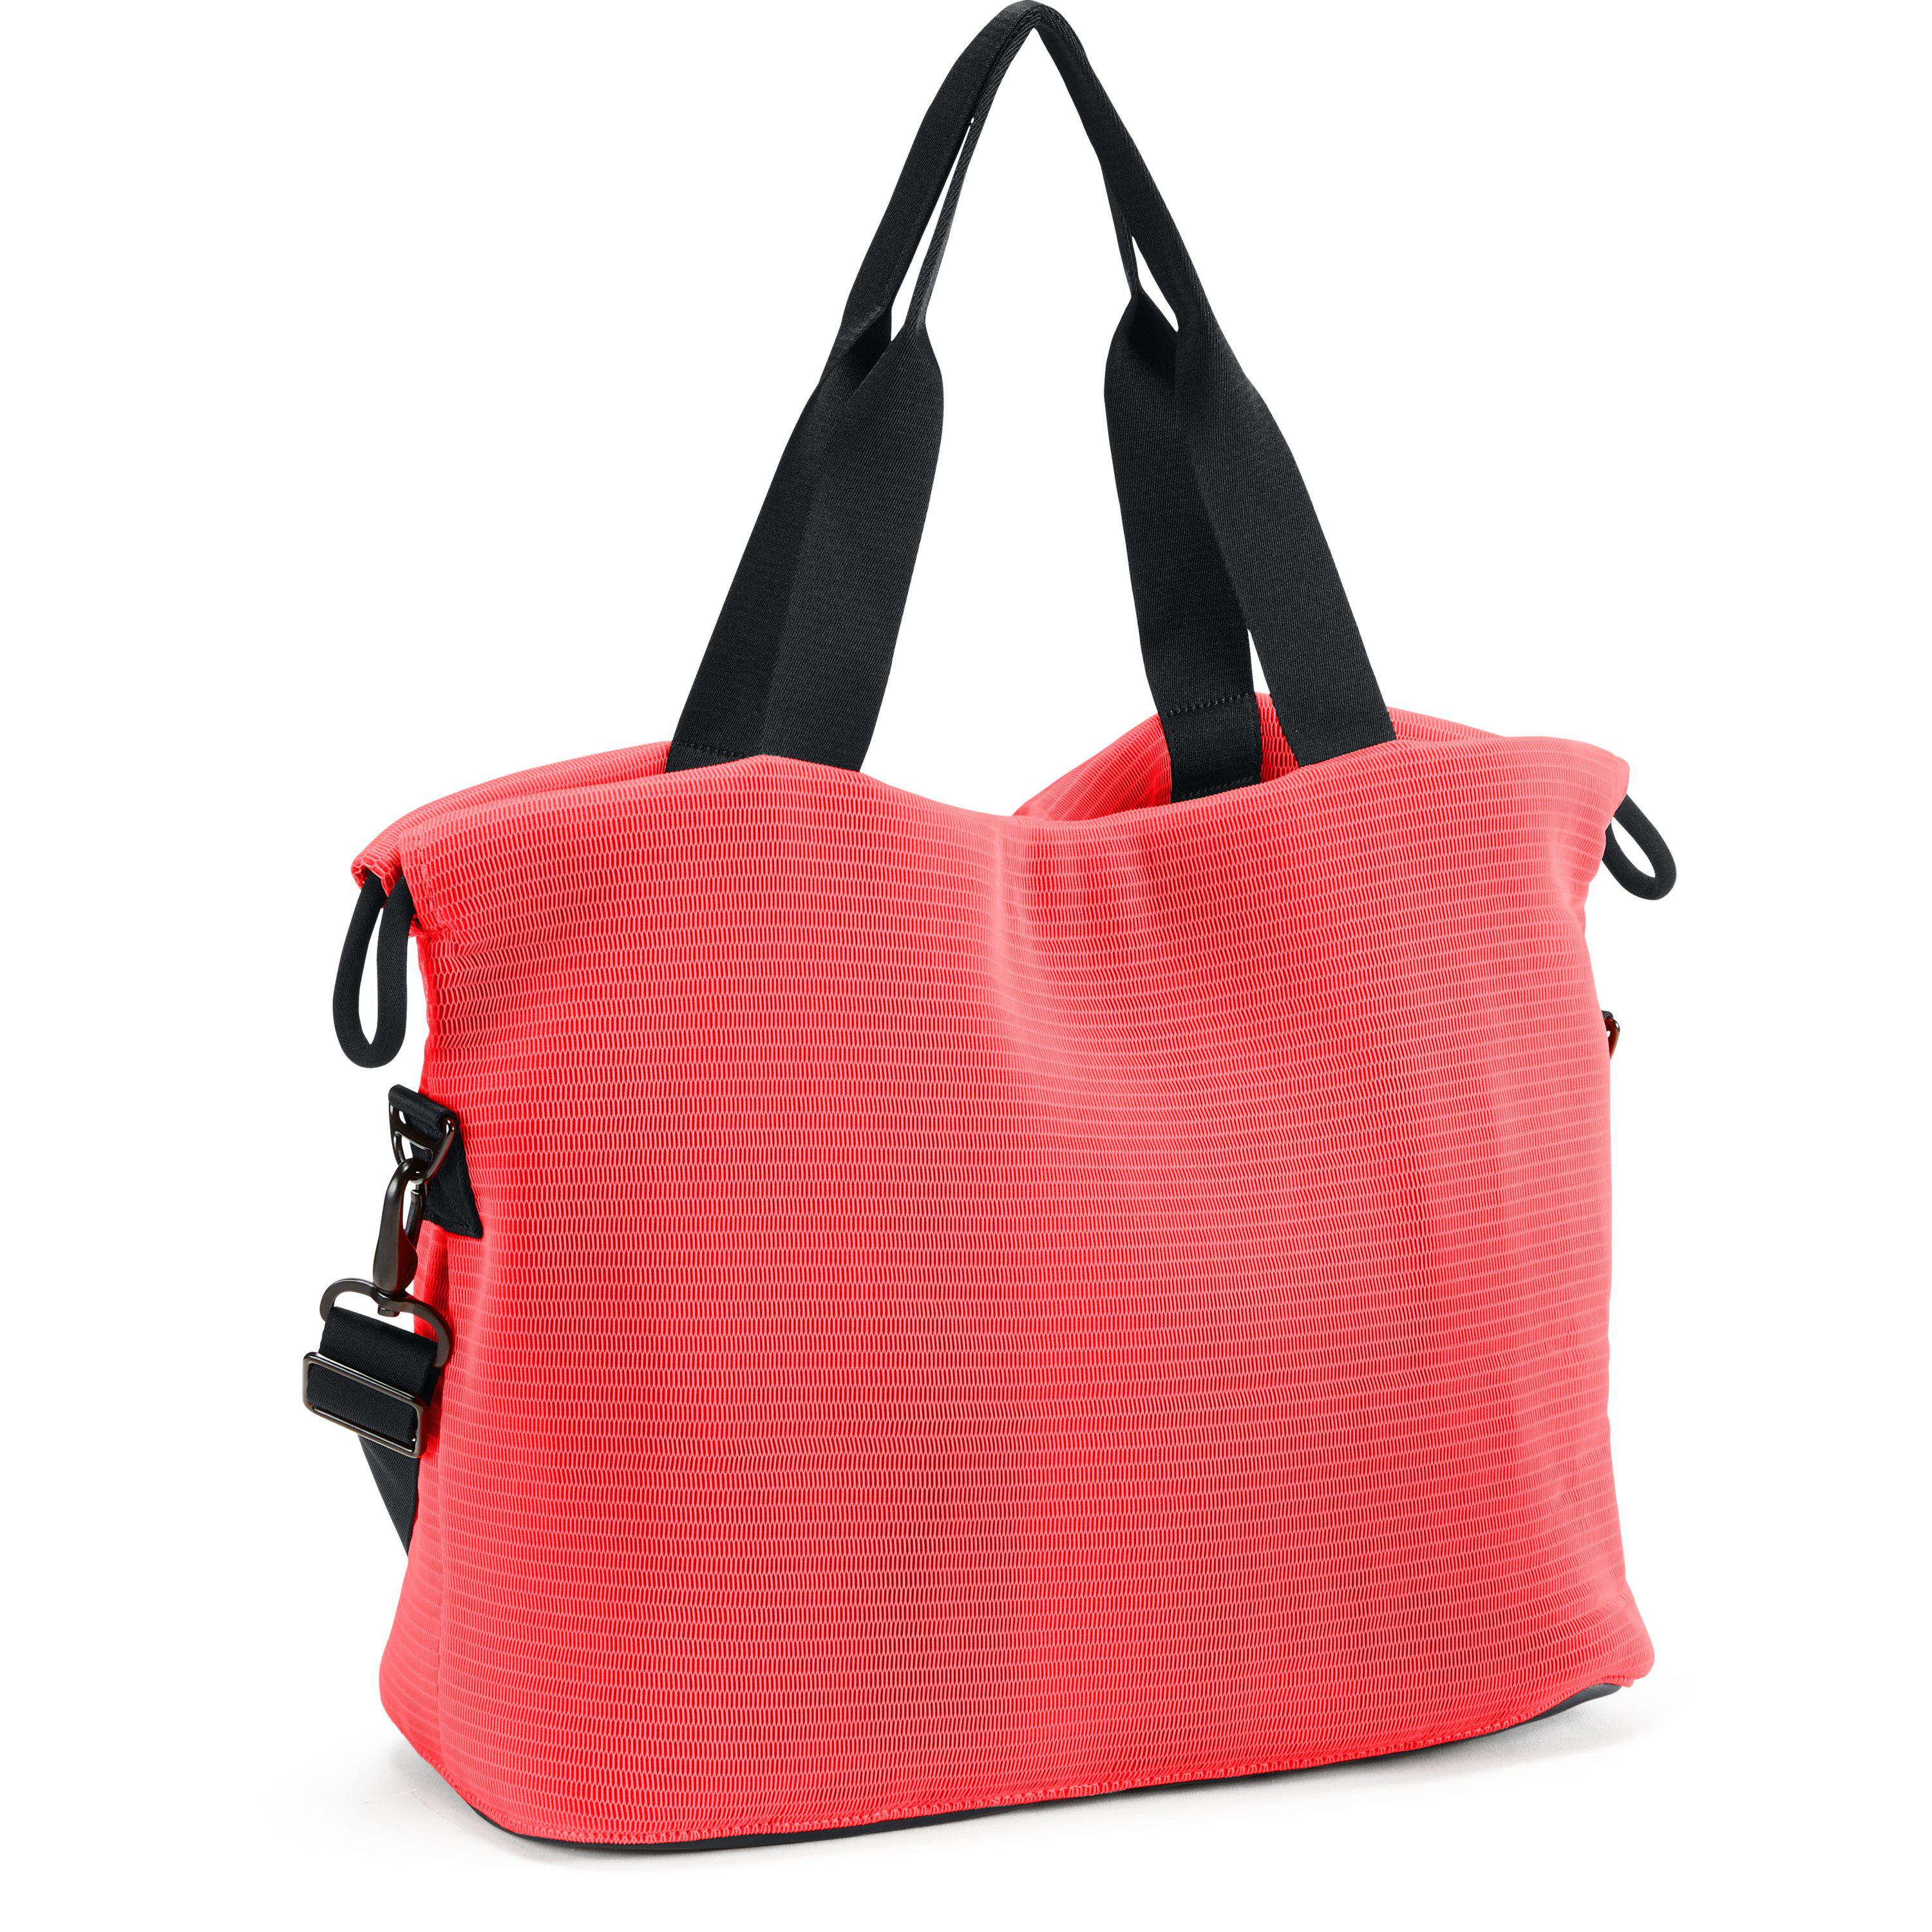 Lyst - Under Armour Women s Ua Cinch Mesh Tote in Red ef8dcf6b85bf7